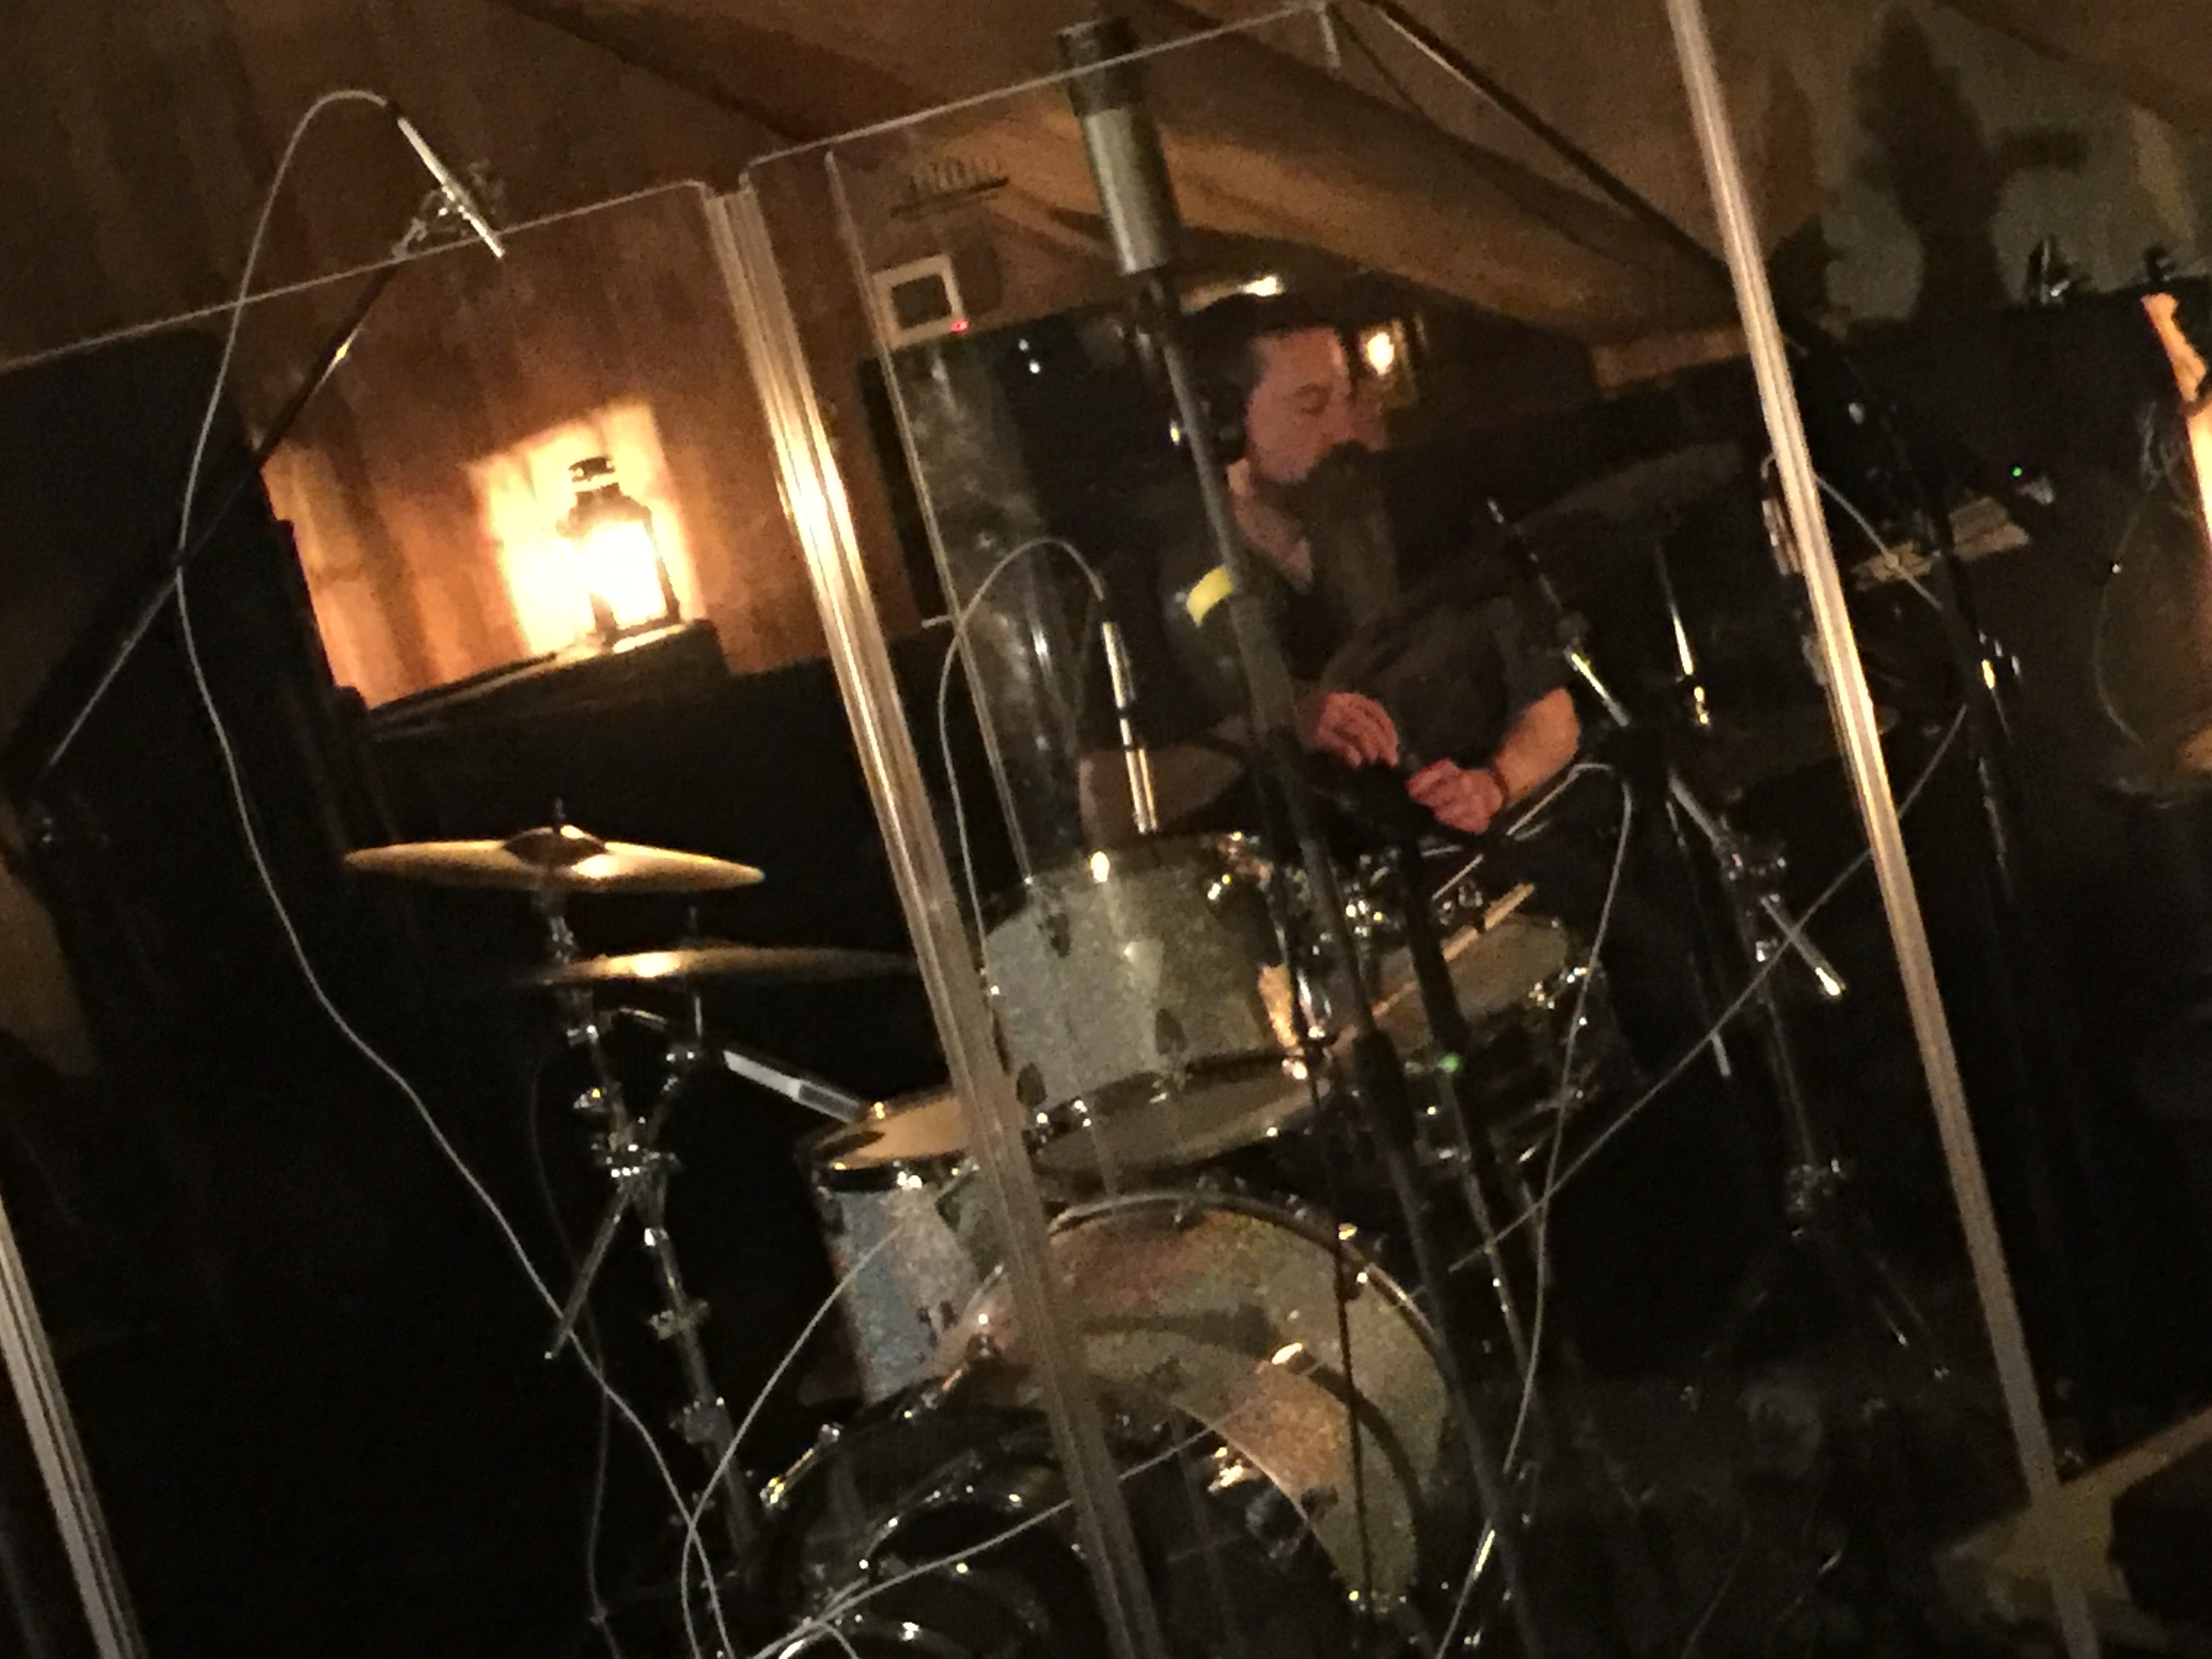 Mark Shewchuk on the drums